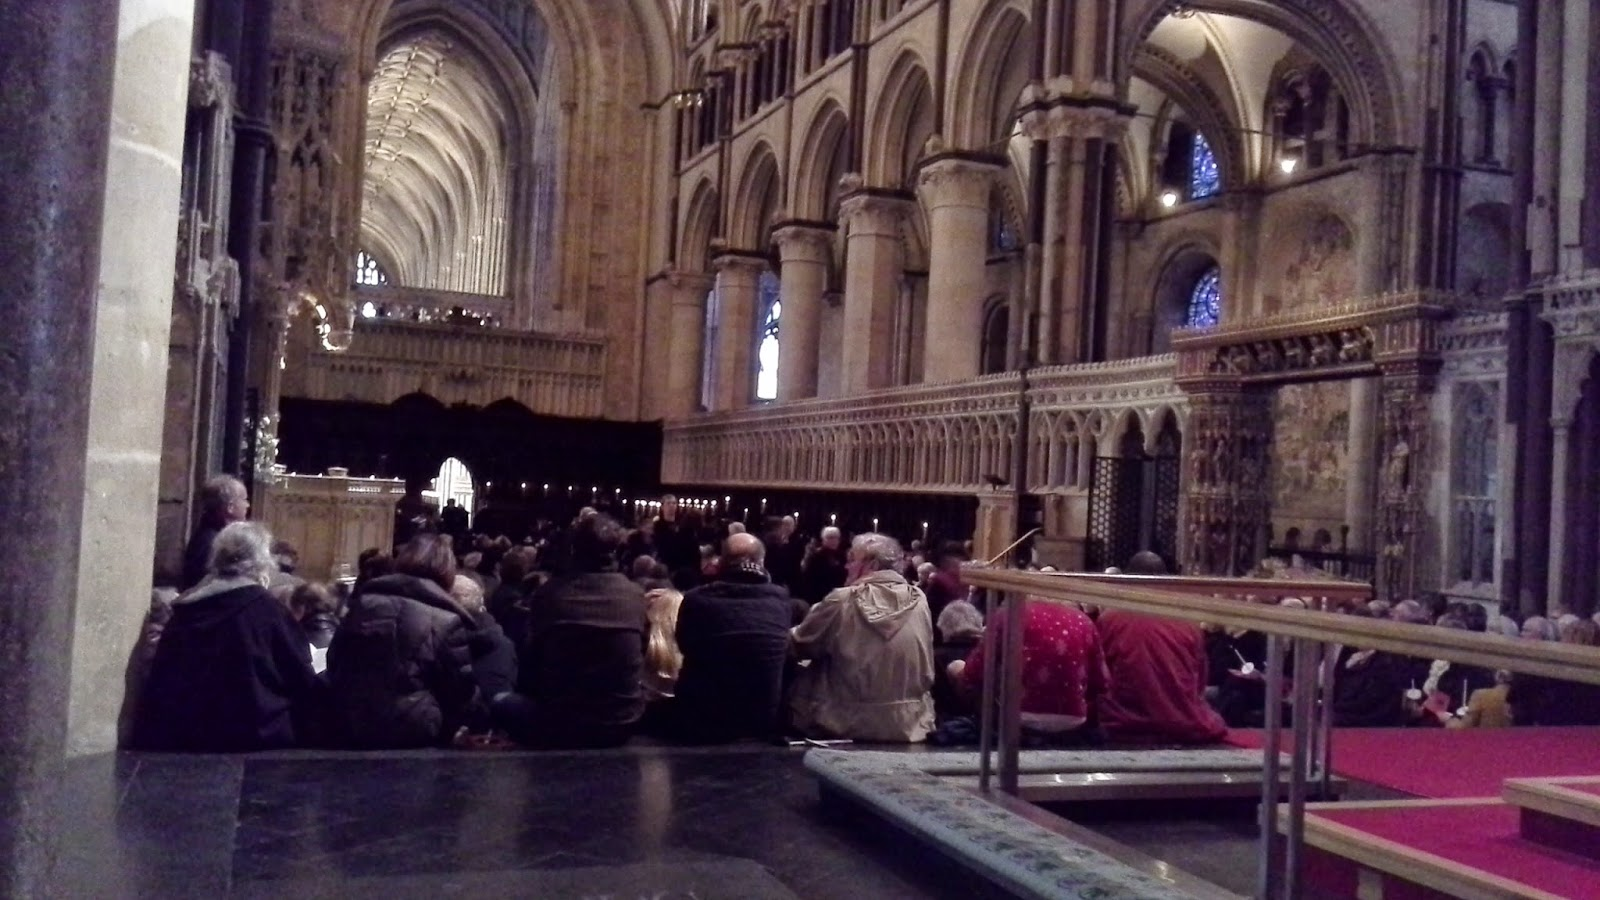 Congregation on the high altar steps at Canterbury Cathedral, awaiting the start of the service